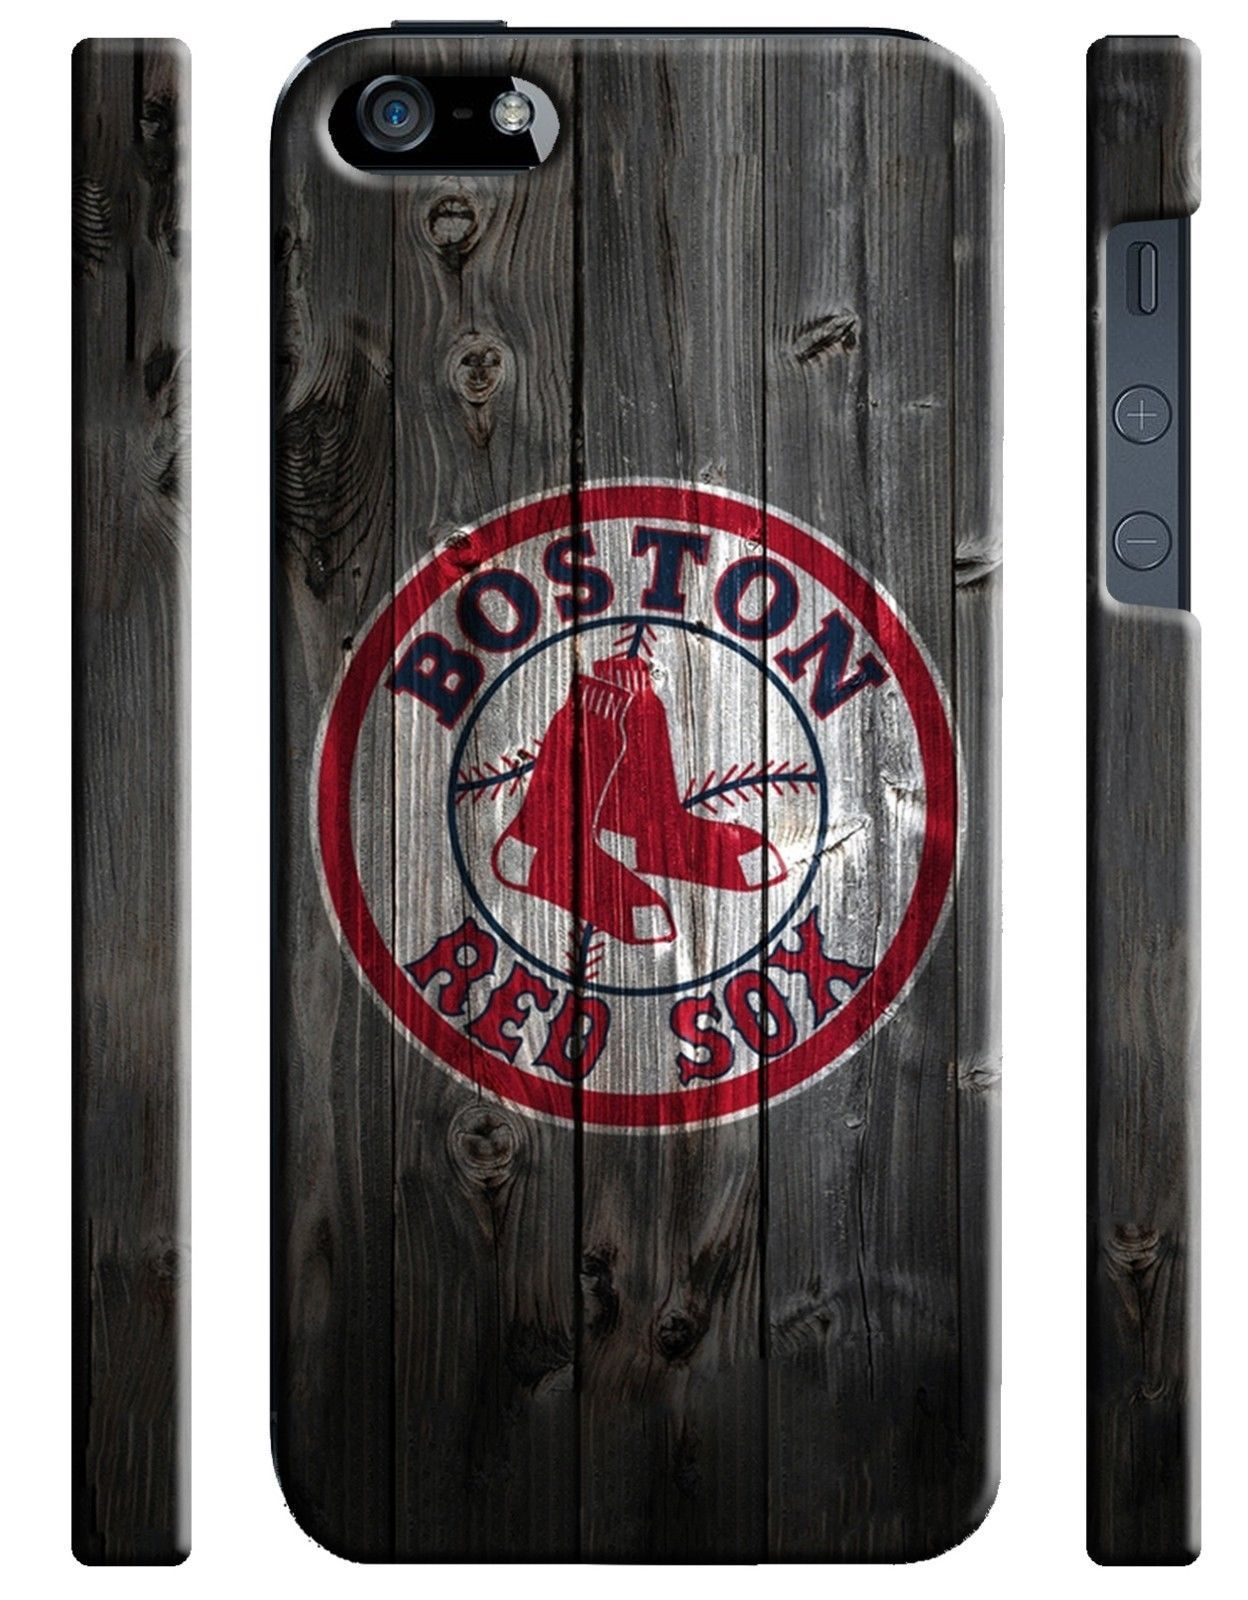 Boston Red Sox Baseball Logo iPhone 4 4S 5 5S 5c 6 6S 7 + Plus SE Case Cover 5 for sale  USA